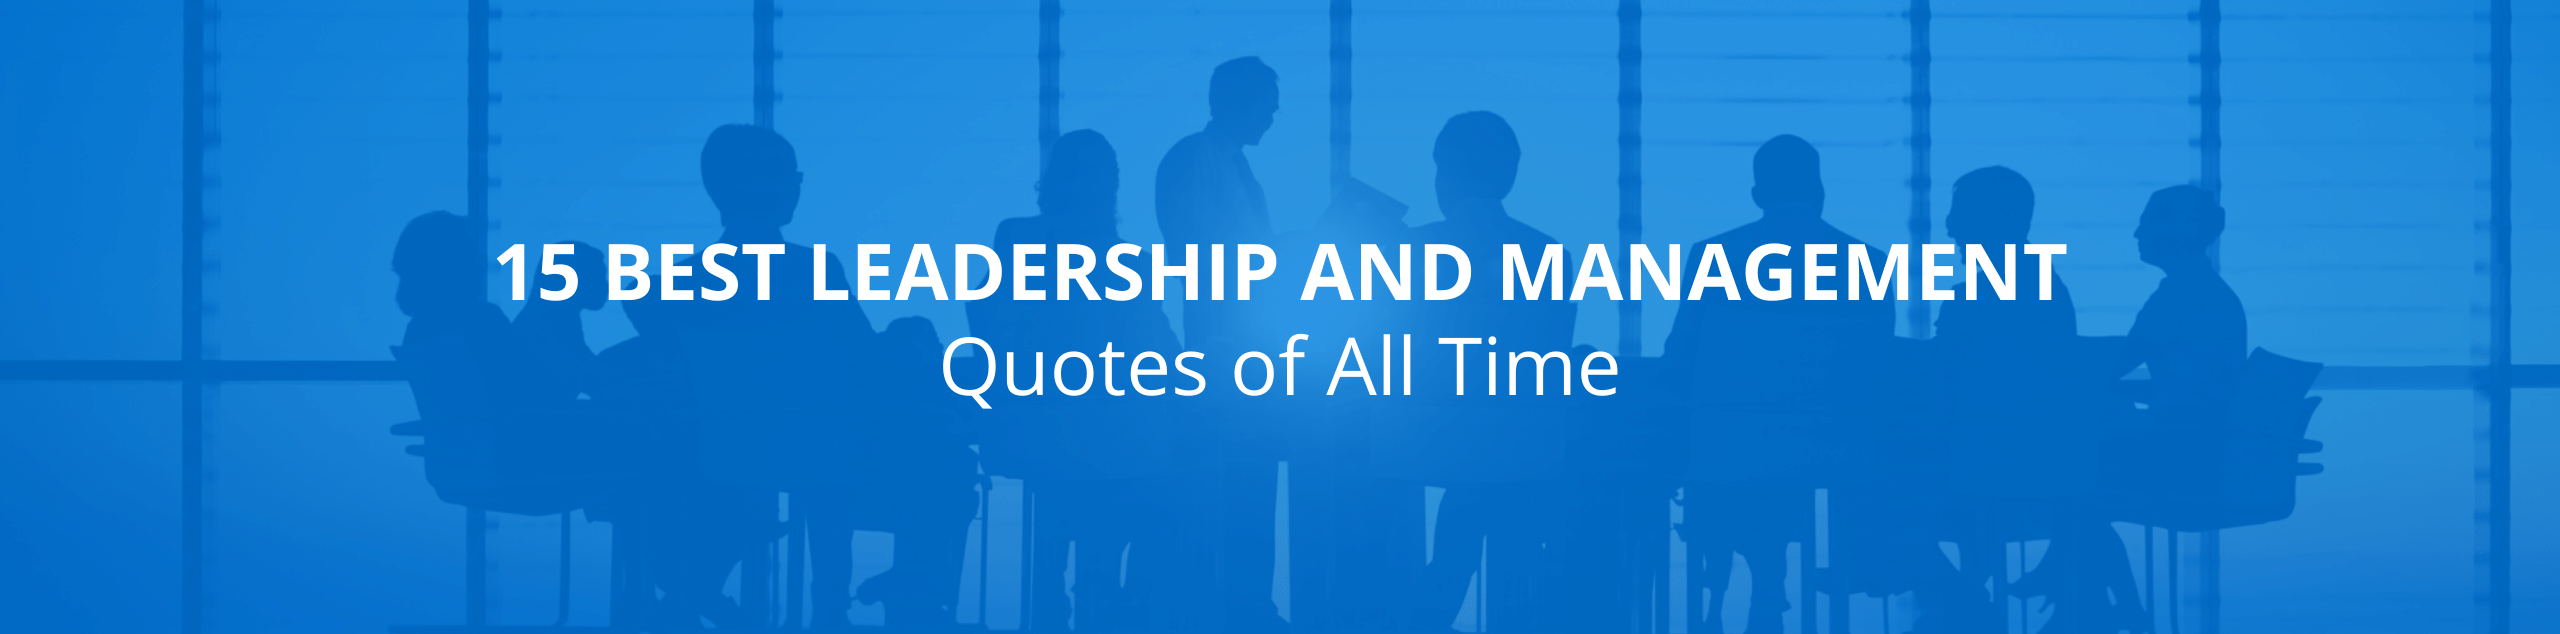 Best Leadership and Management Quotes